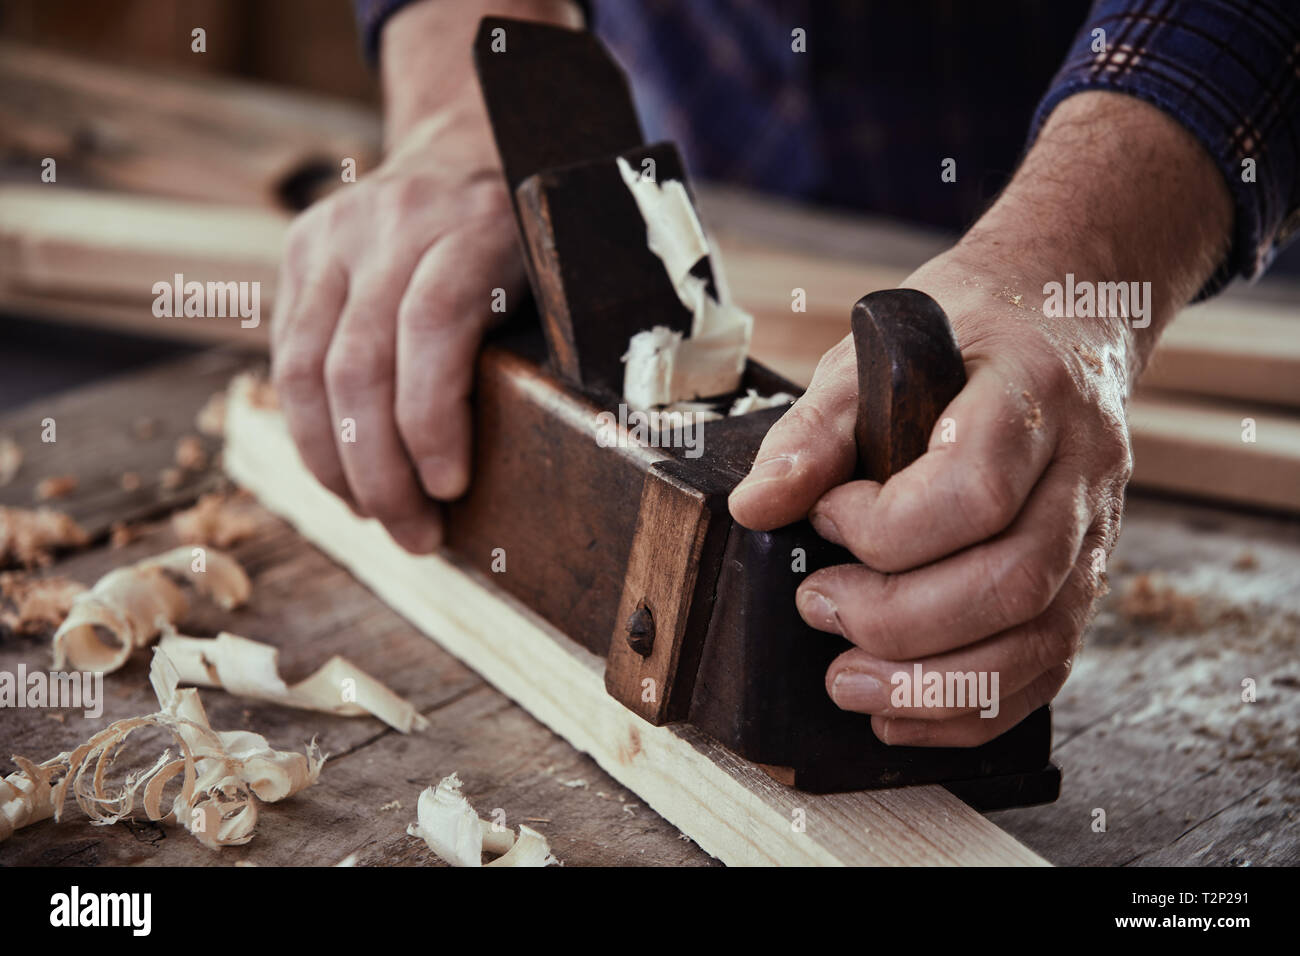 Hands of a carpenter, woodworker or joiner using a vintage plane to smooth the surface of a plank of lumber on his workbench - Stock Image